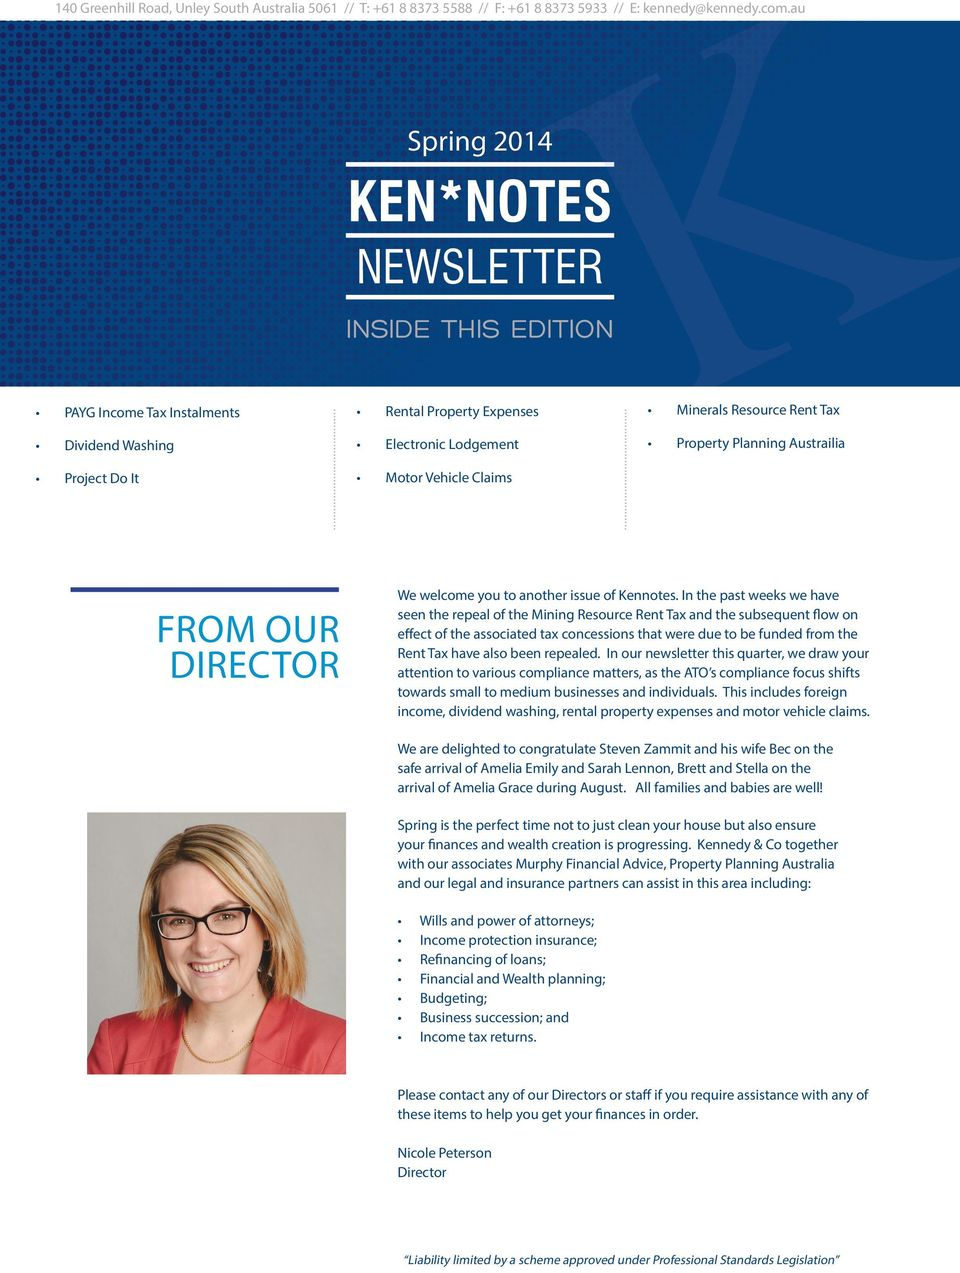 FROM OUR DIRECTOR We welcome you to another issue of Kennotes.